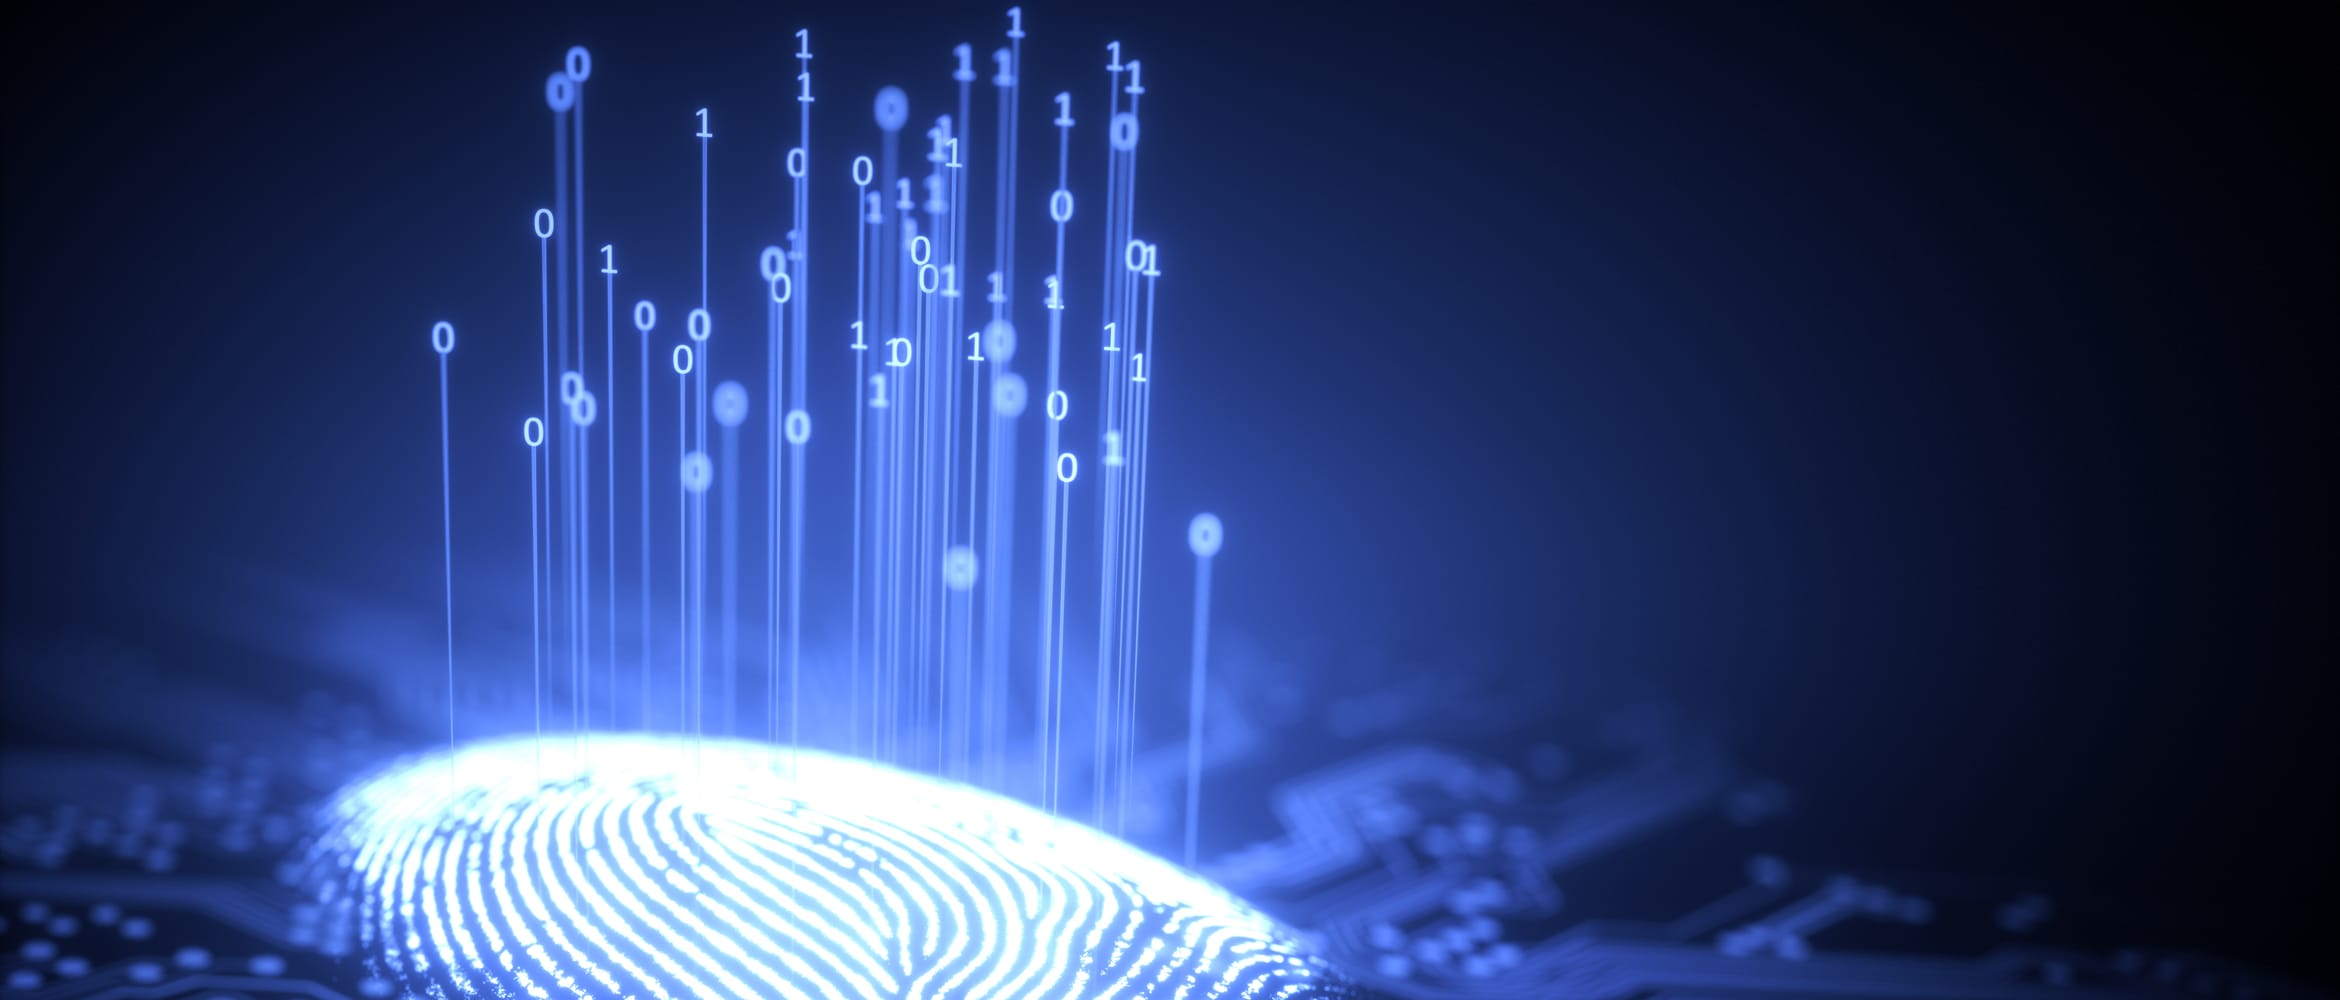 Binary code floating above a finger print to indicate fingerprint recognition technology